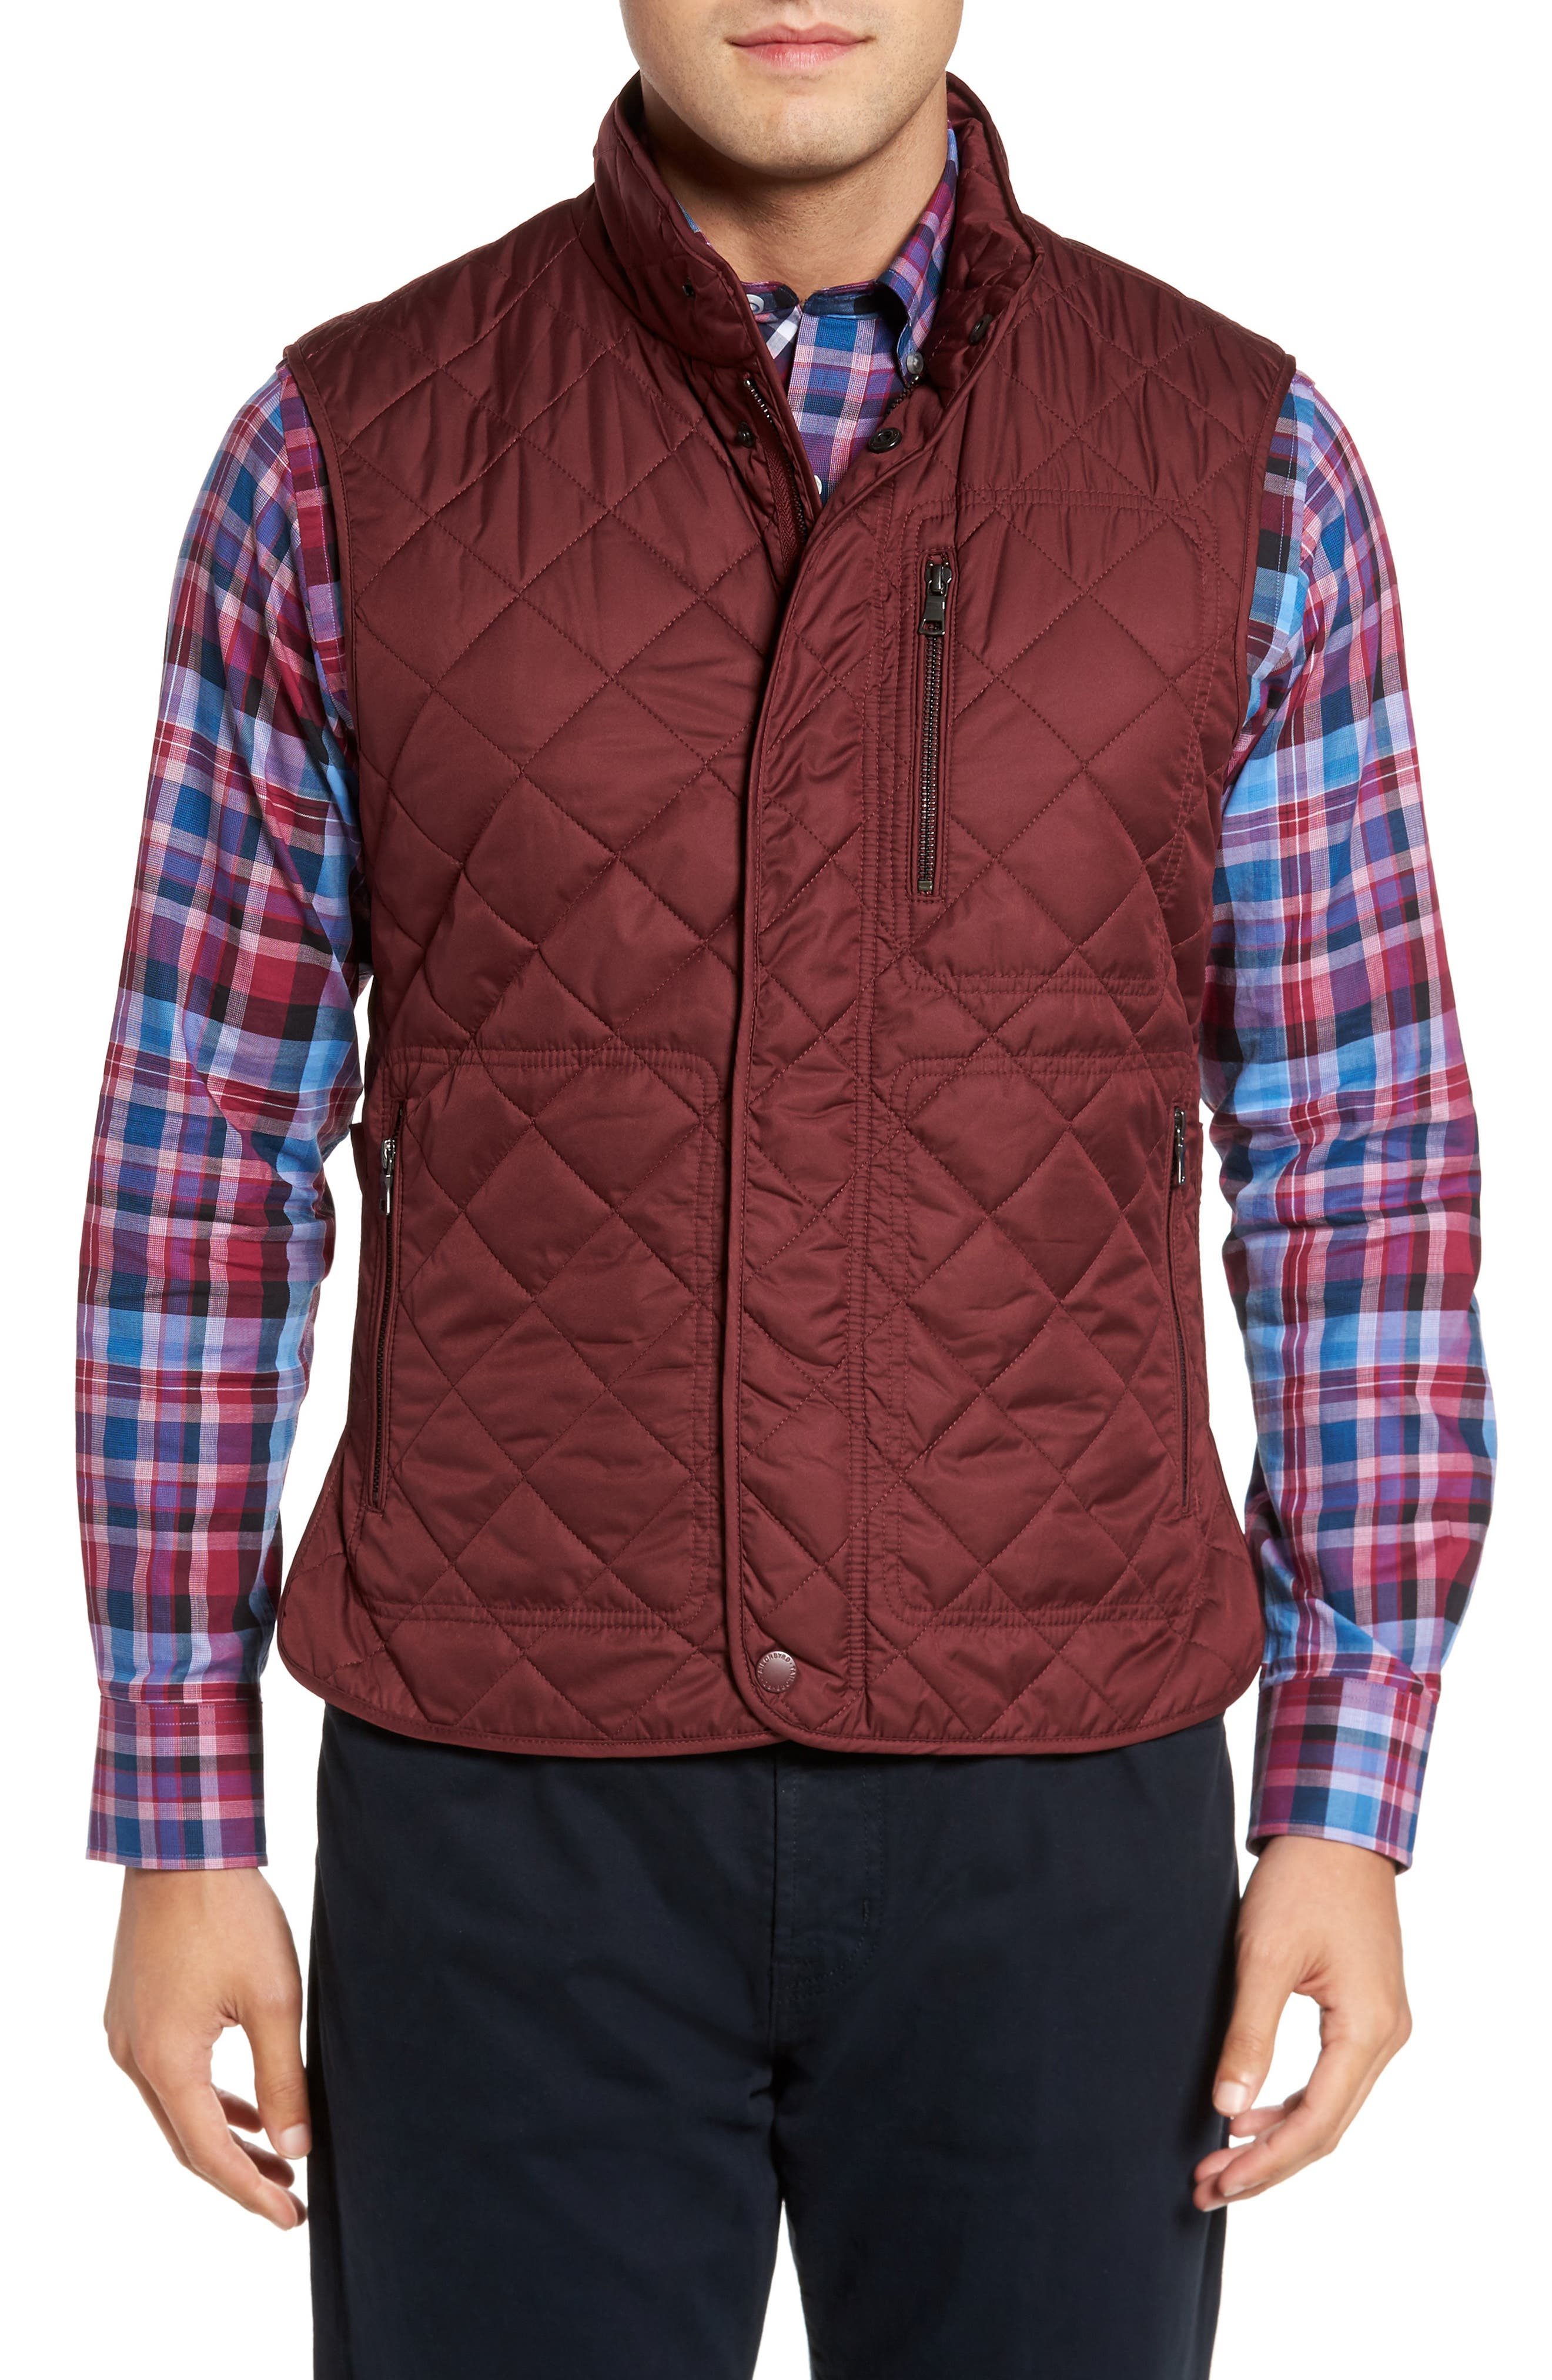 Hessmer Quilted Vest,                             Main thumbnail 1, color,                             Burgundy